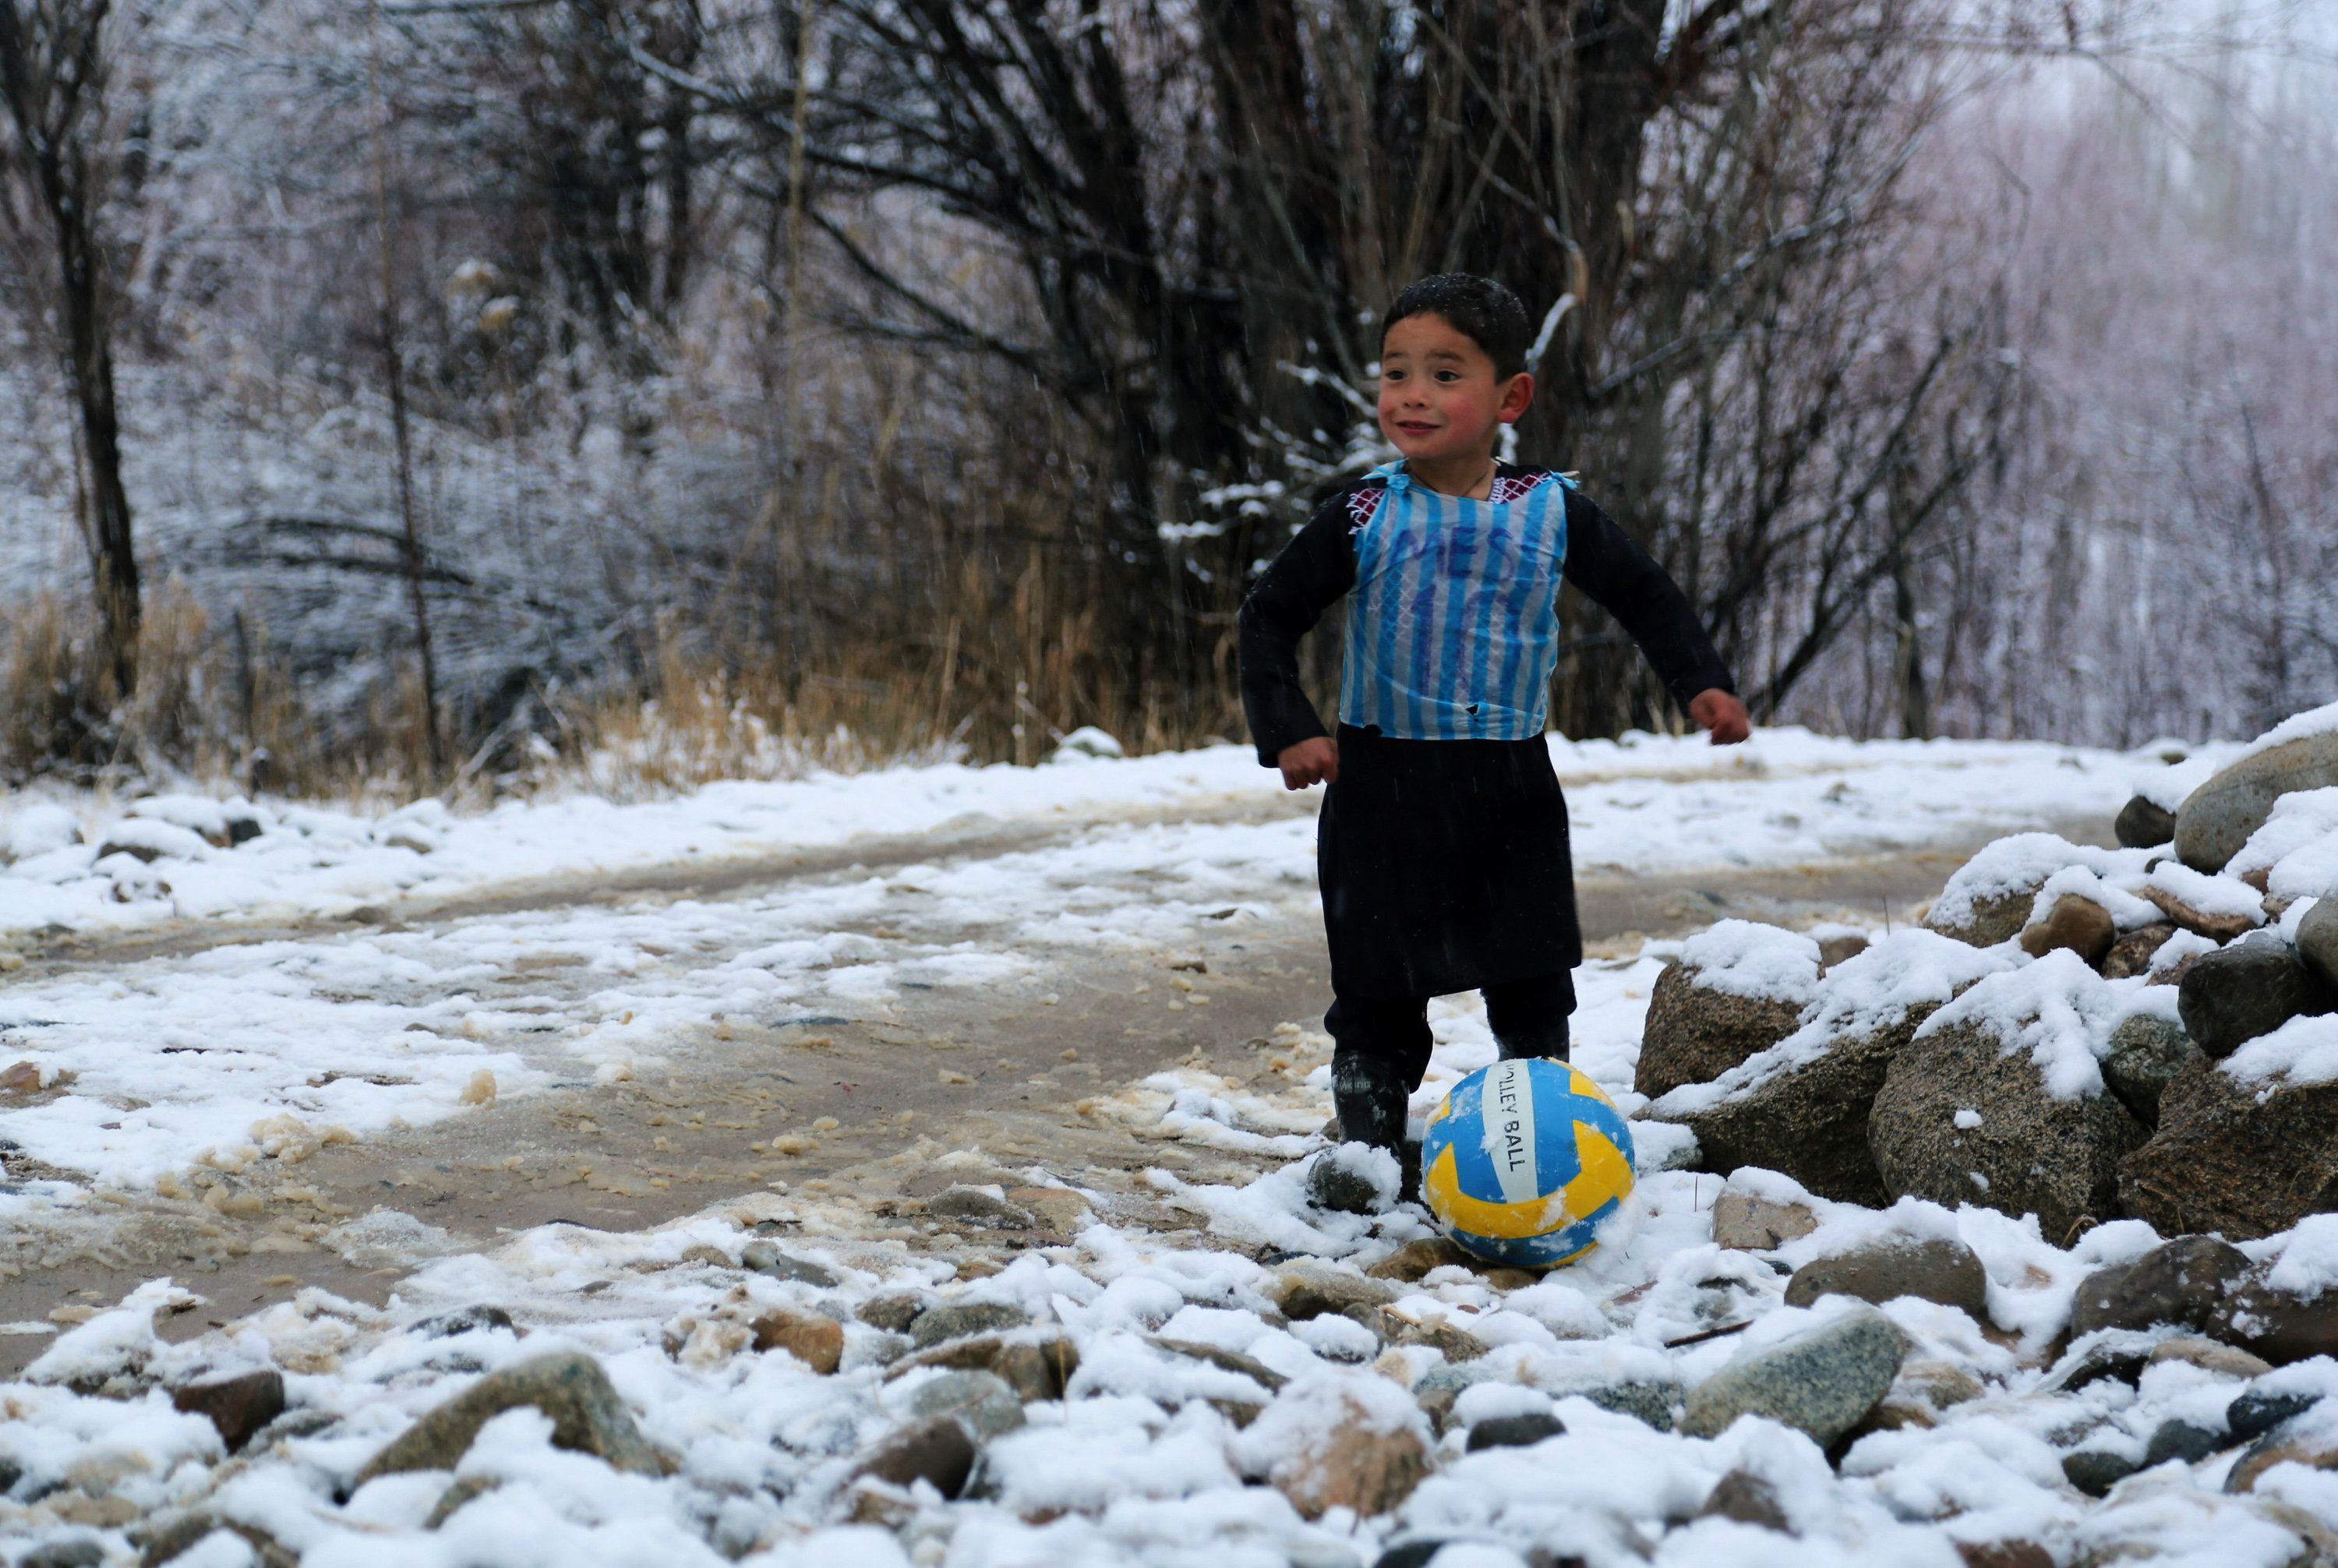 In this photograph taken on January 29, 2016, Afghan boy and Lionel Messi fan Murtaza Ahmadi, 5, wears a plastic bag jersey as he plays football in Jaghori district of Ghazni province.  A five-year-old Afghan boy has become an internet star after pictures went viral of him wearing an Argentina football shirt made out of a plastic bag, complete with his hero Lionel Messi's name. AFP PHOTO / AFP / STR        (Photo credit should read STR/AFP/Getty Images)